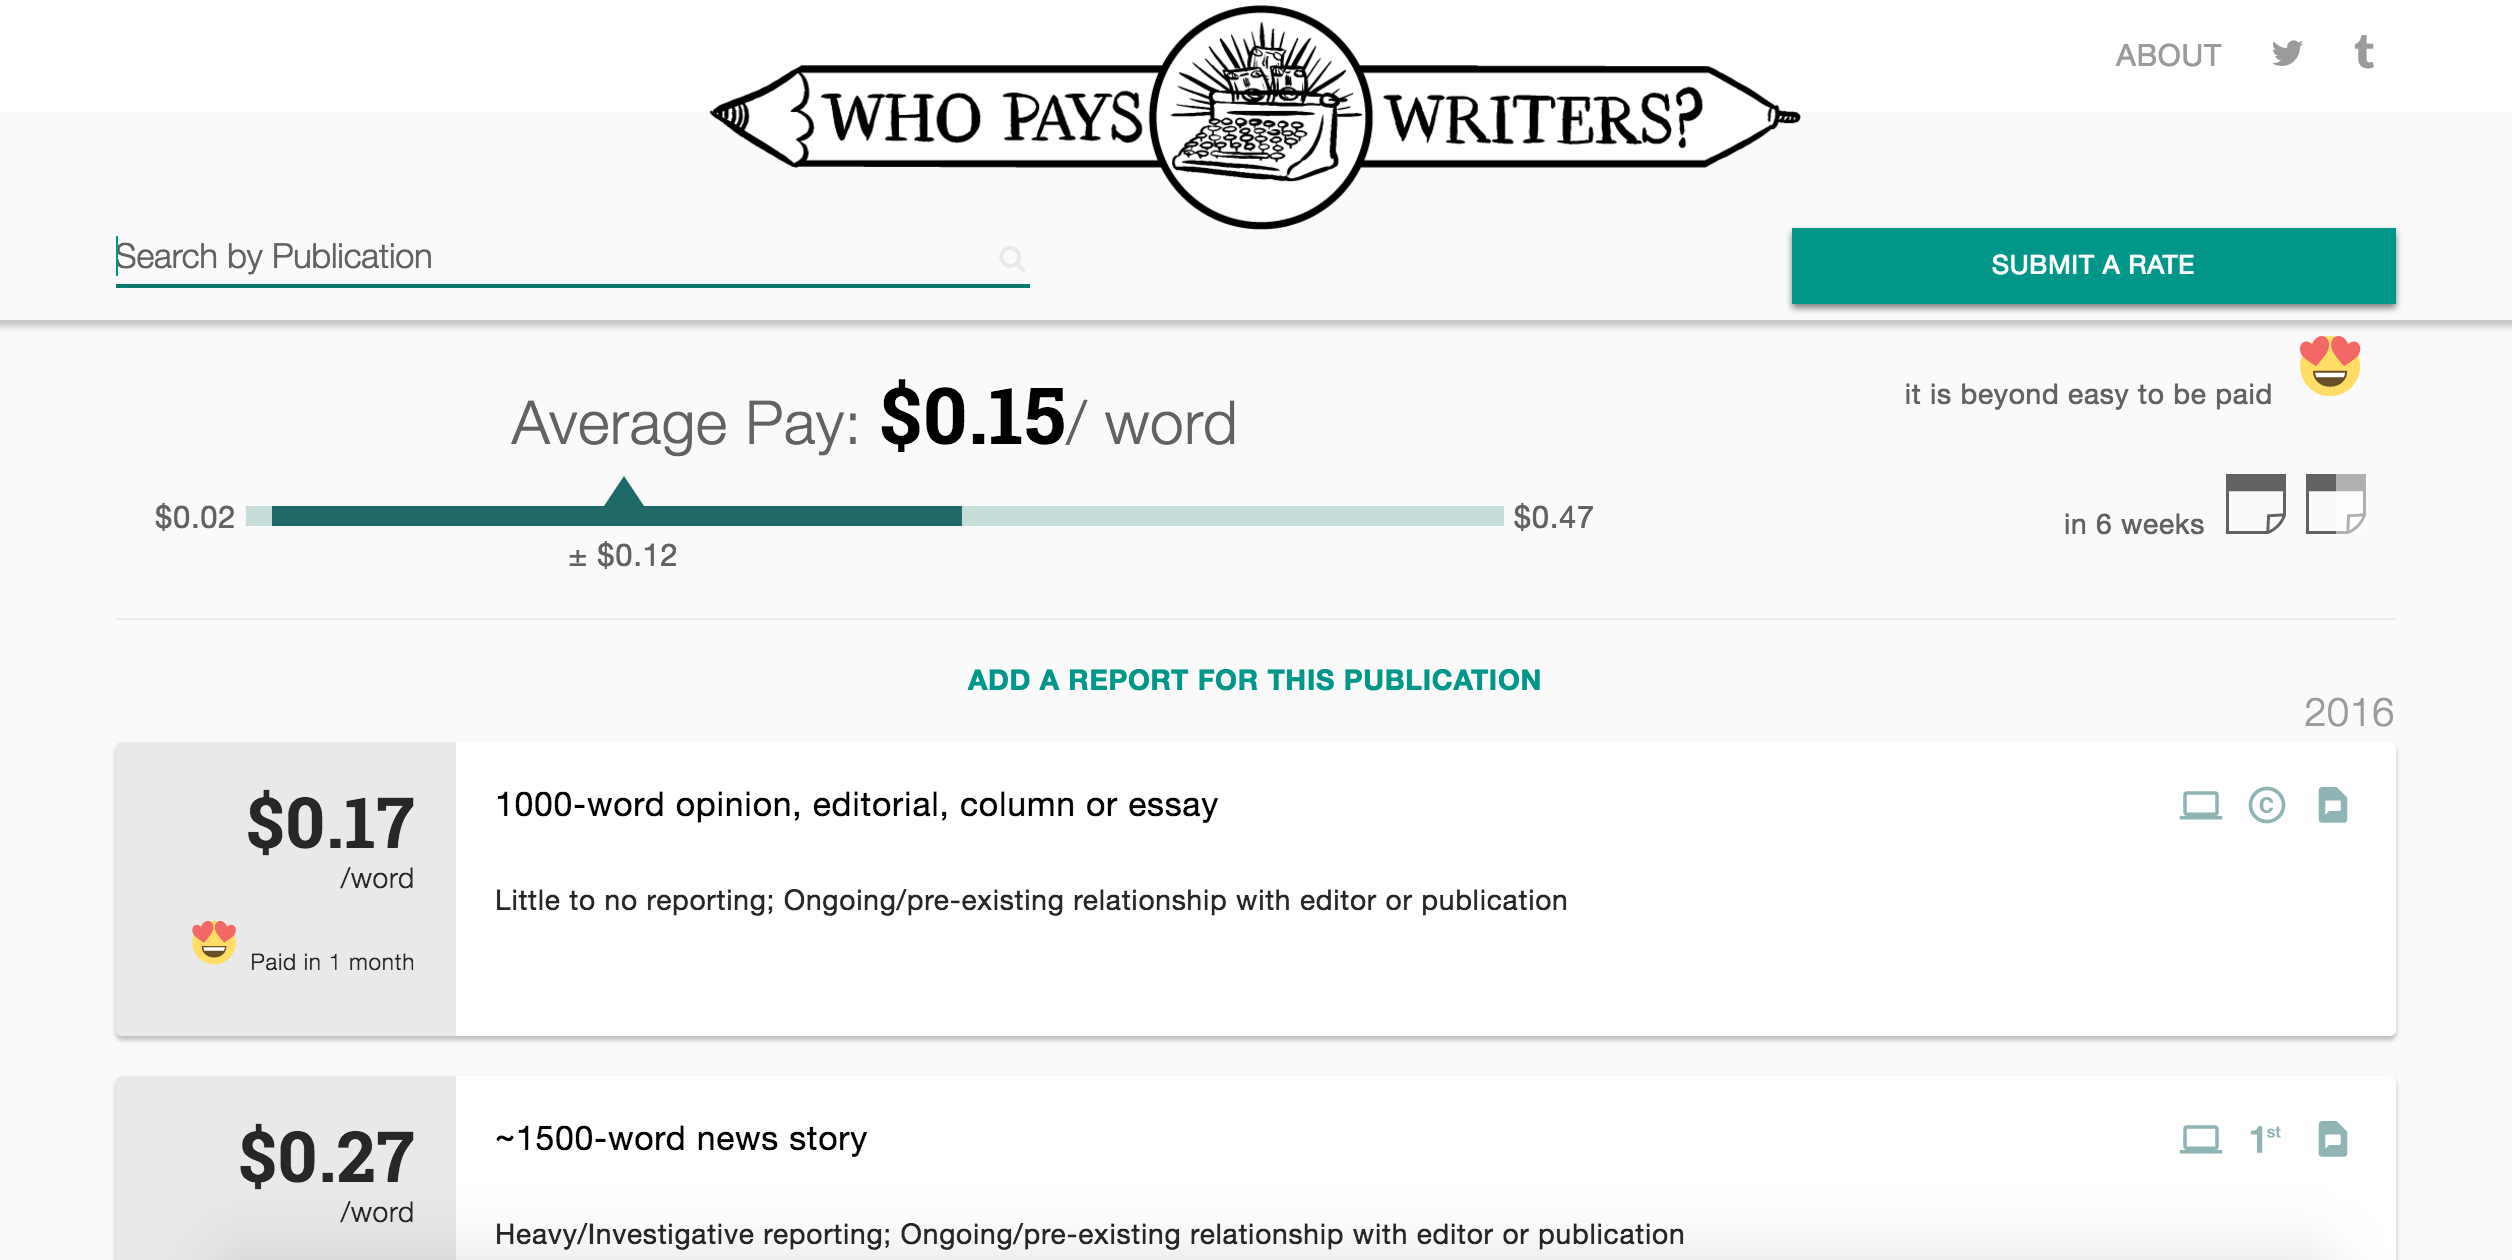 report writing pay Make the report writing process easy for your students by using these animal report graphic organizers the differentiated templates meet their diverse learning needs and provide support to grade 1, grade 2, and grade 3 students.